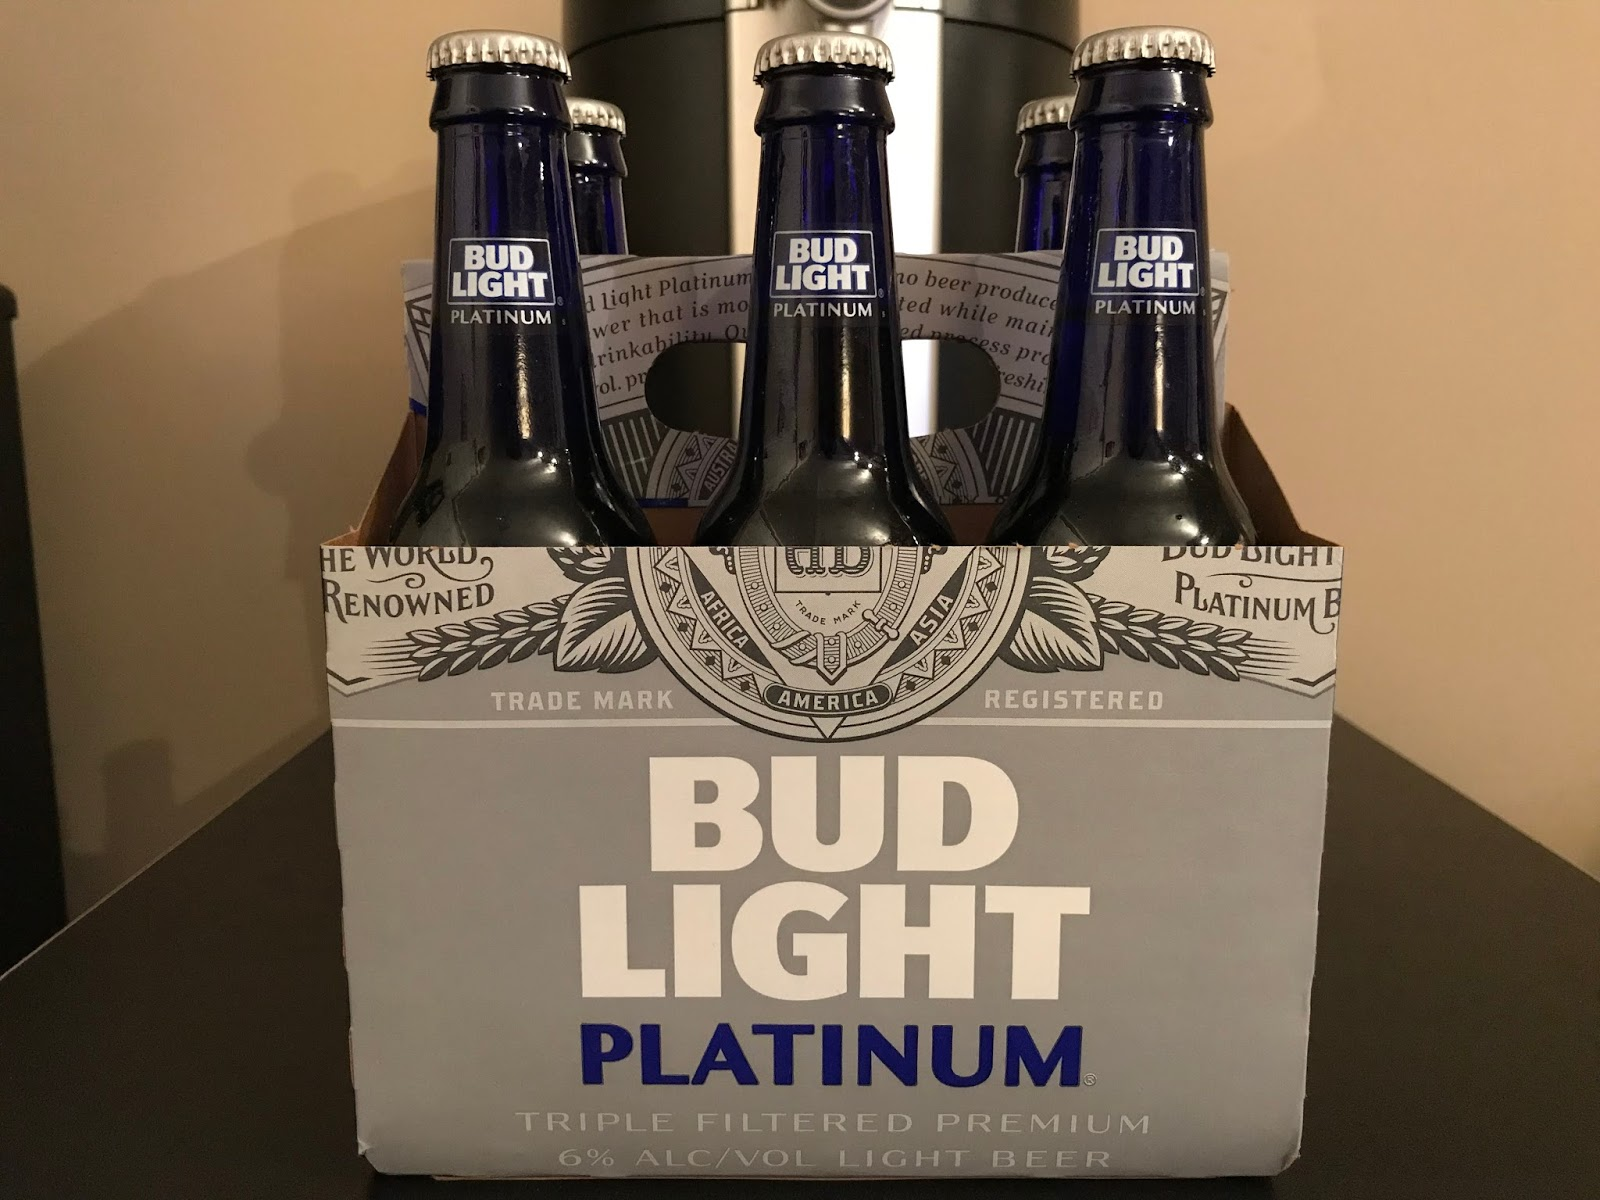 platinum re garth light de bi on bud photo